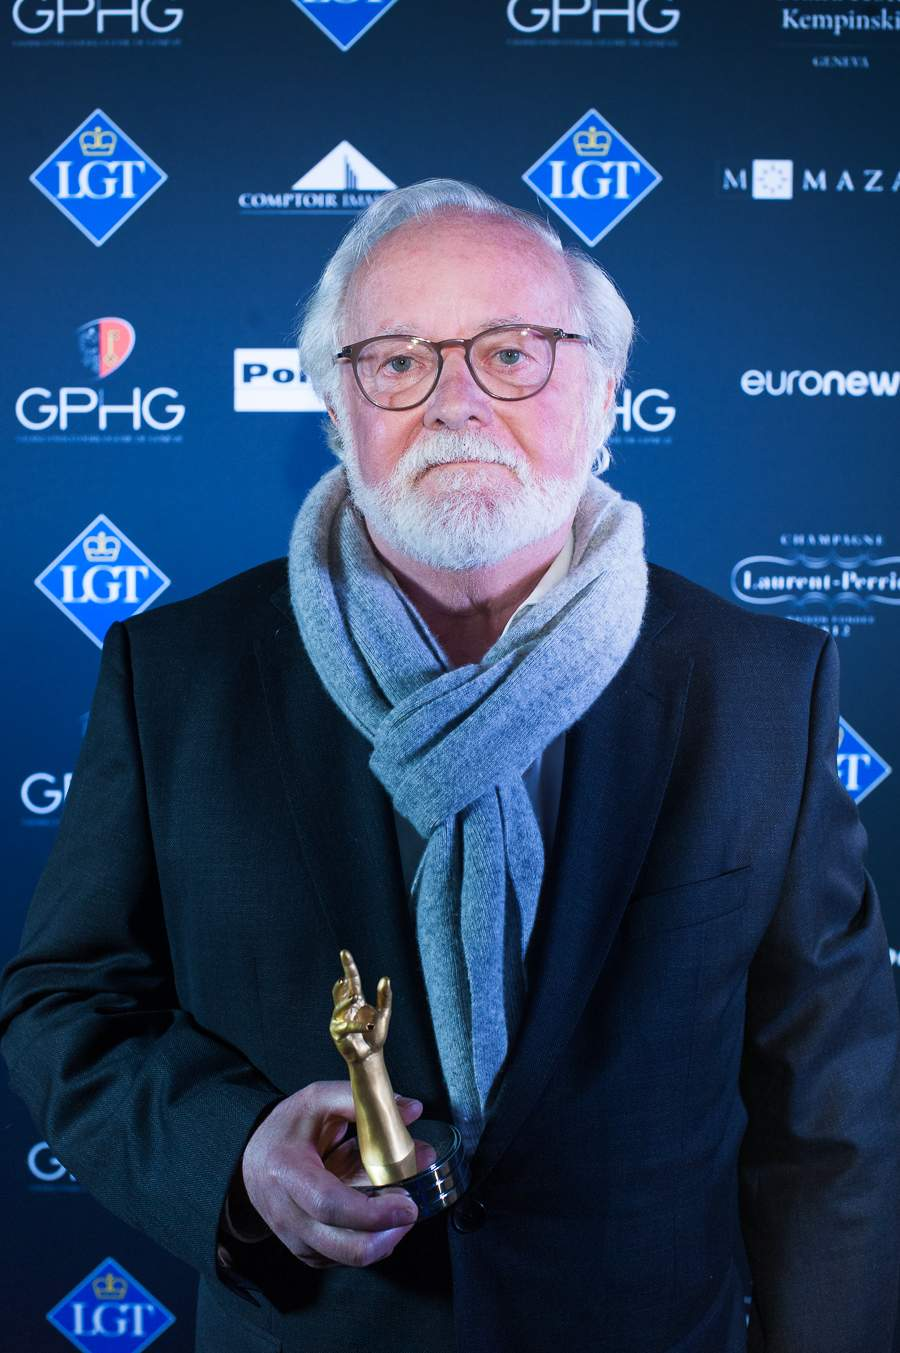 Laurent Ferrier, Founder, winner of the Men's Complication Watch Prize 2018